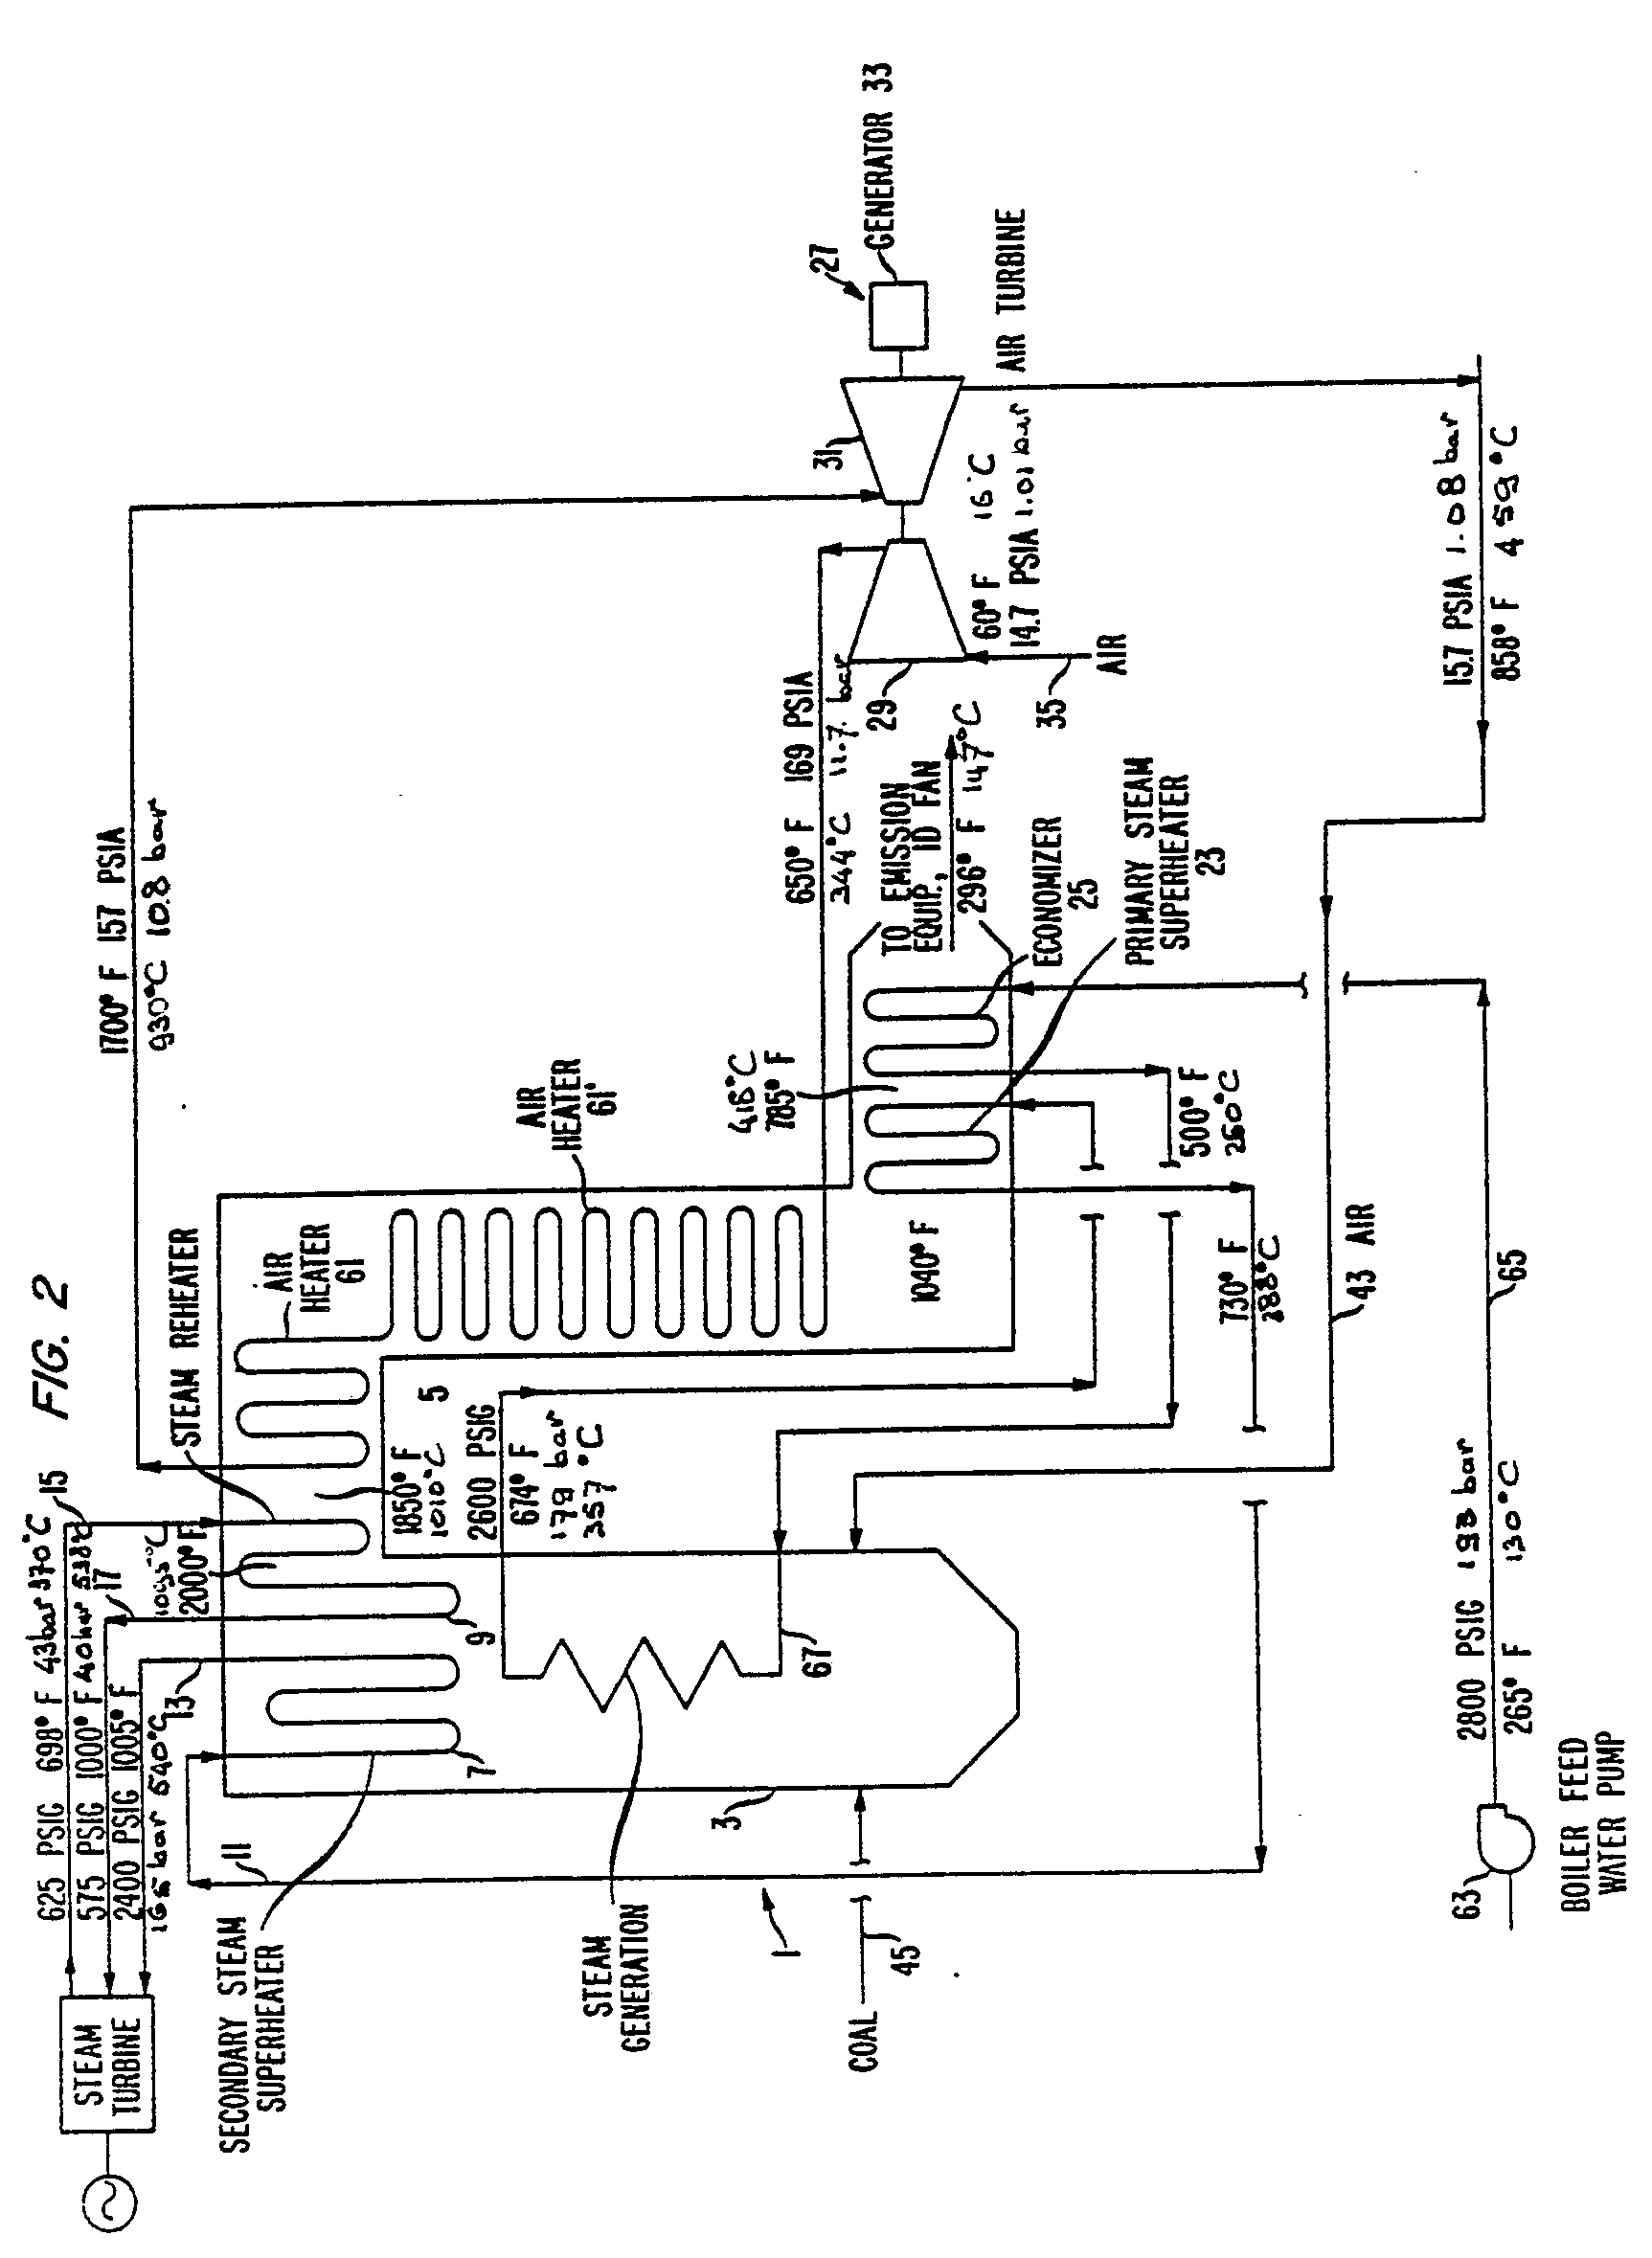 1992 Old 88 Wiring Diagram